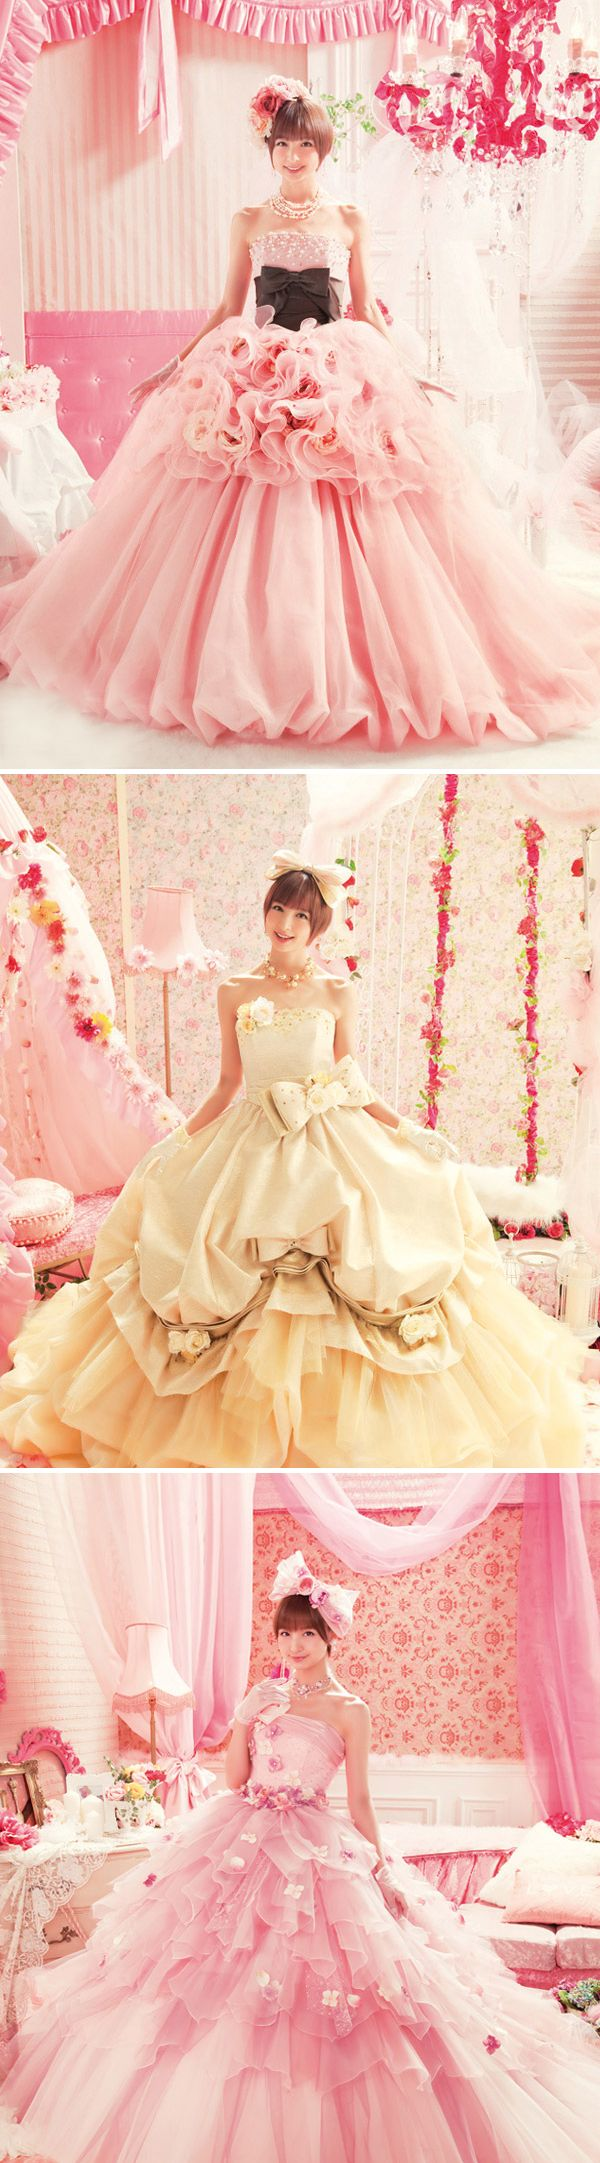 31 best Princess gowns images on Pinterest | Wedding bridesmaid ...